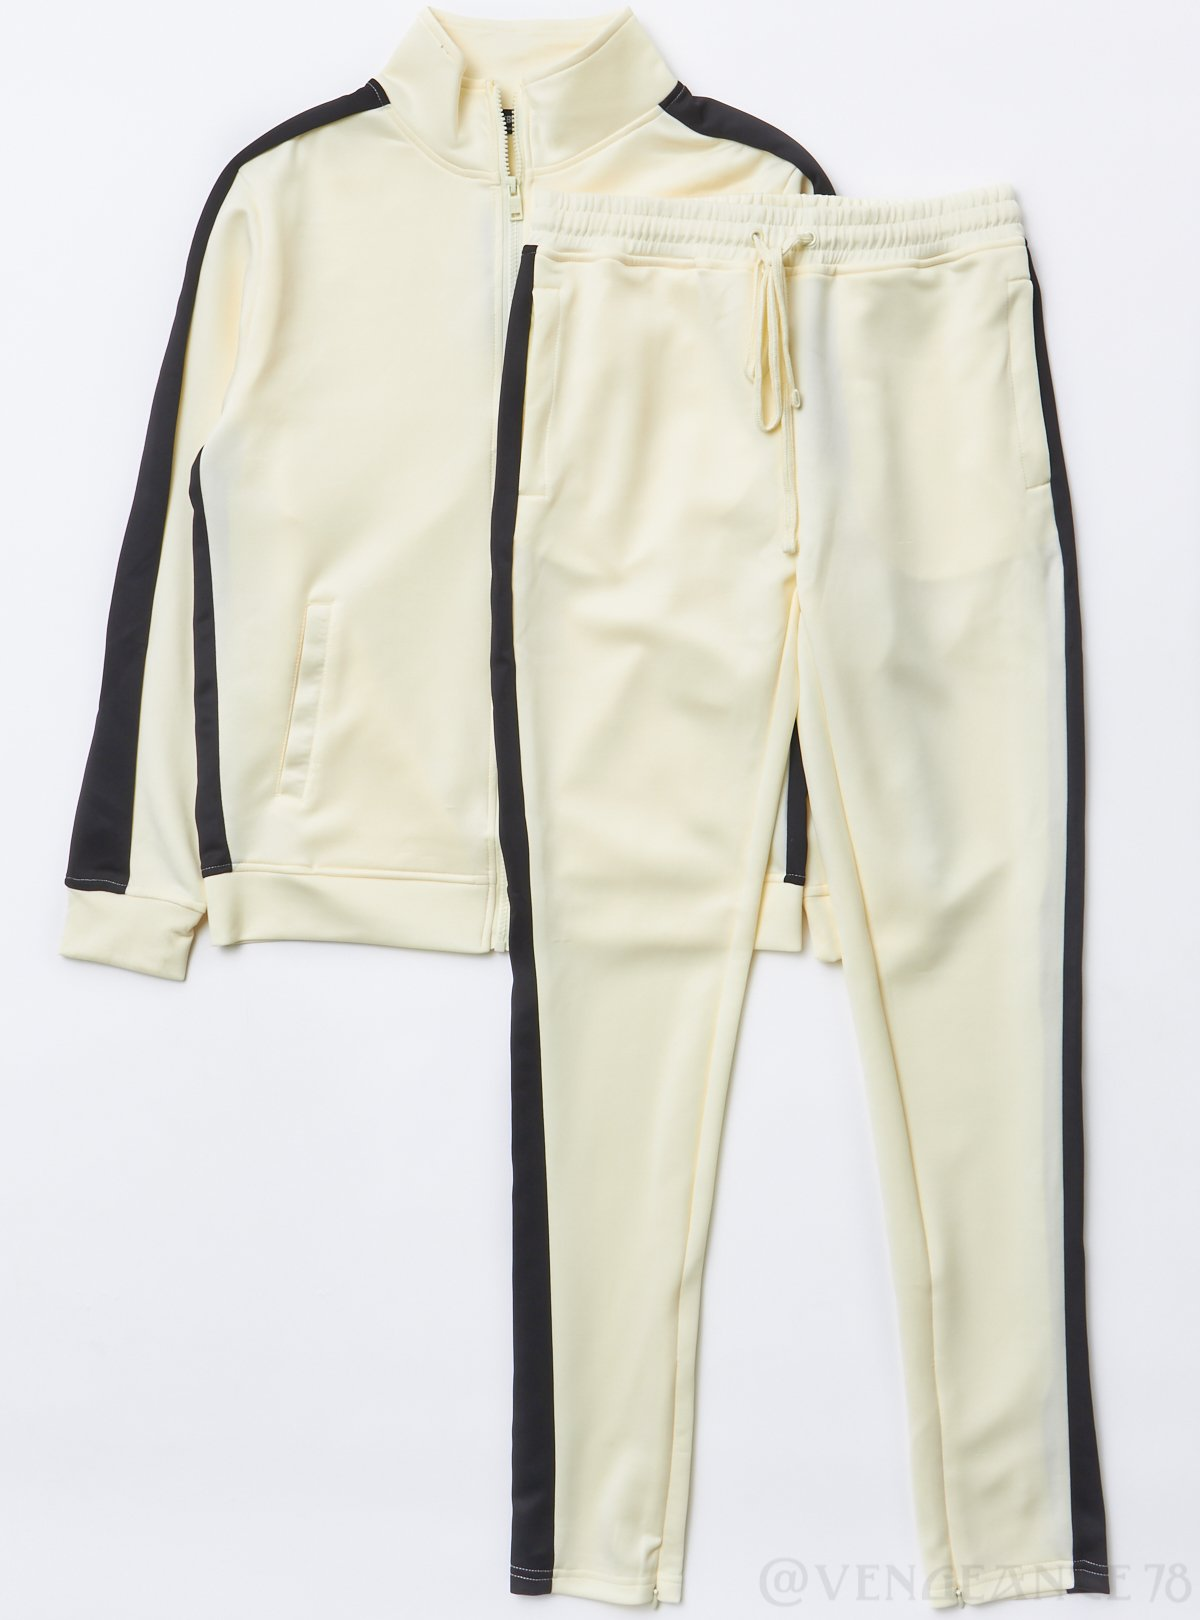 Rebel Minds Track Suit - Cream and Black - 100-502